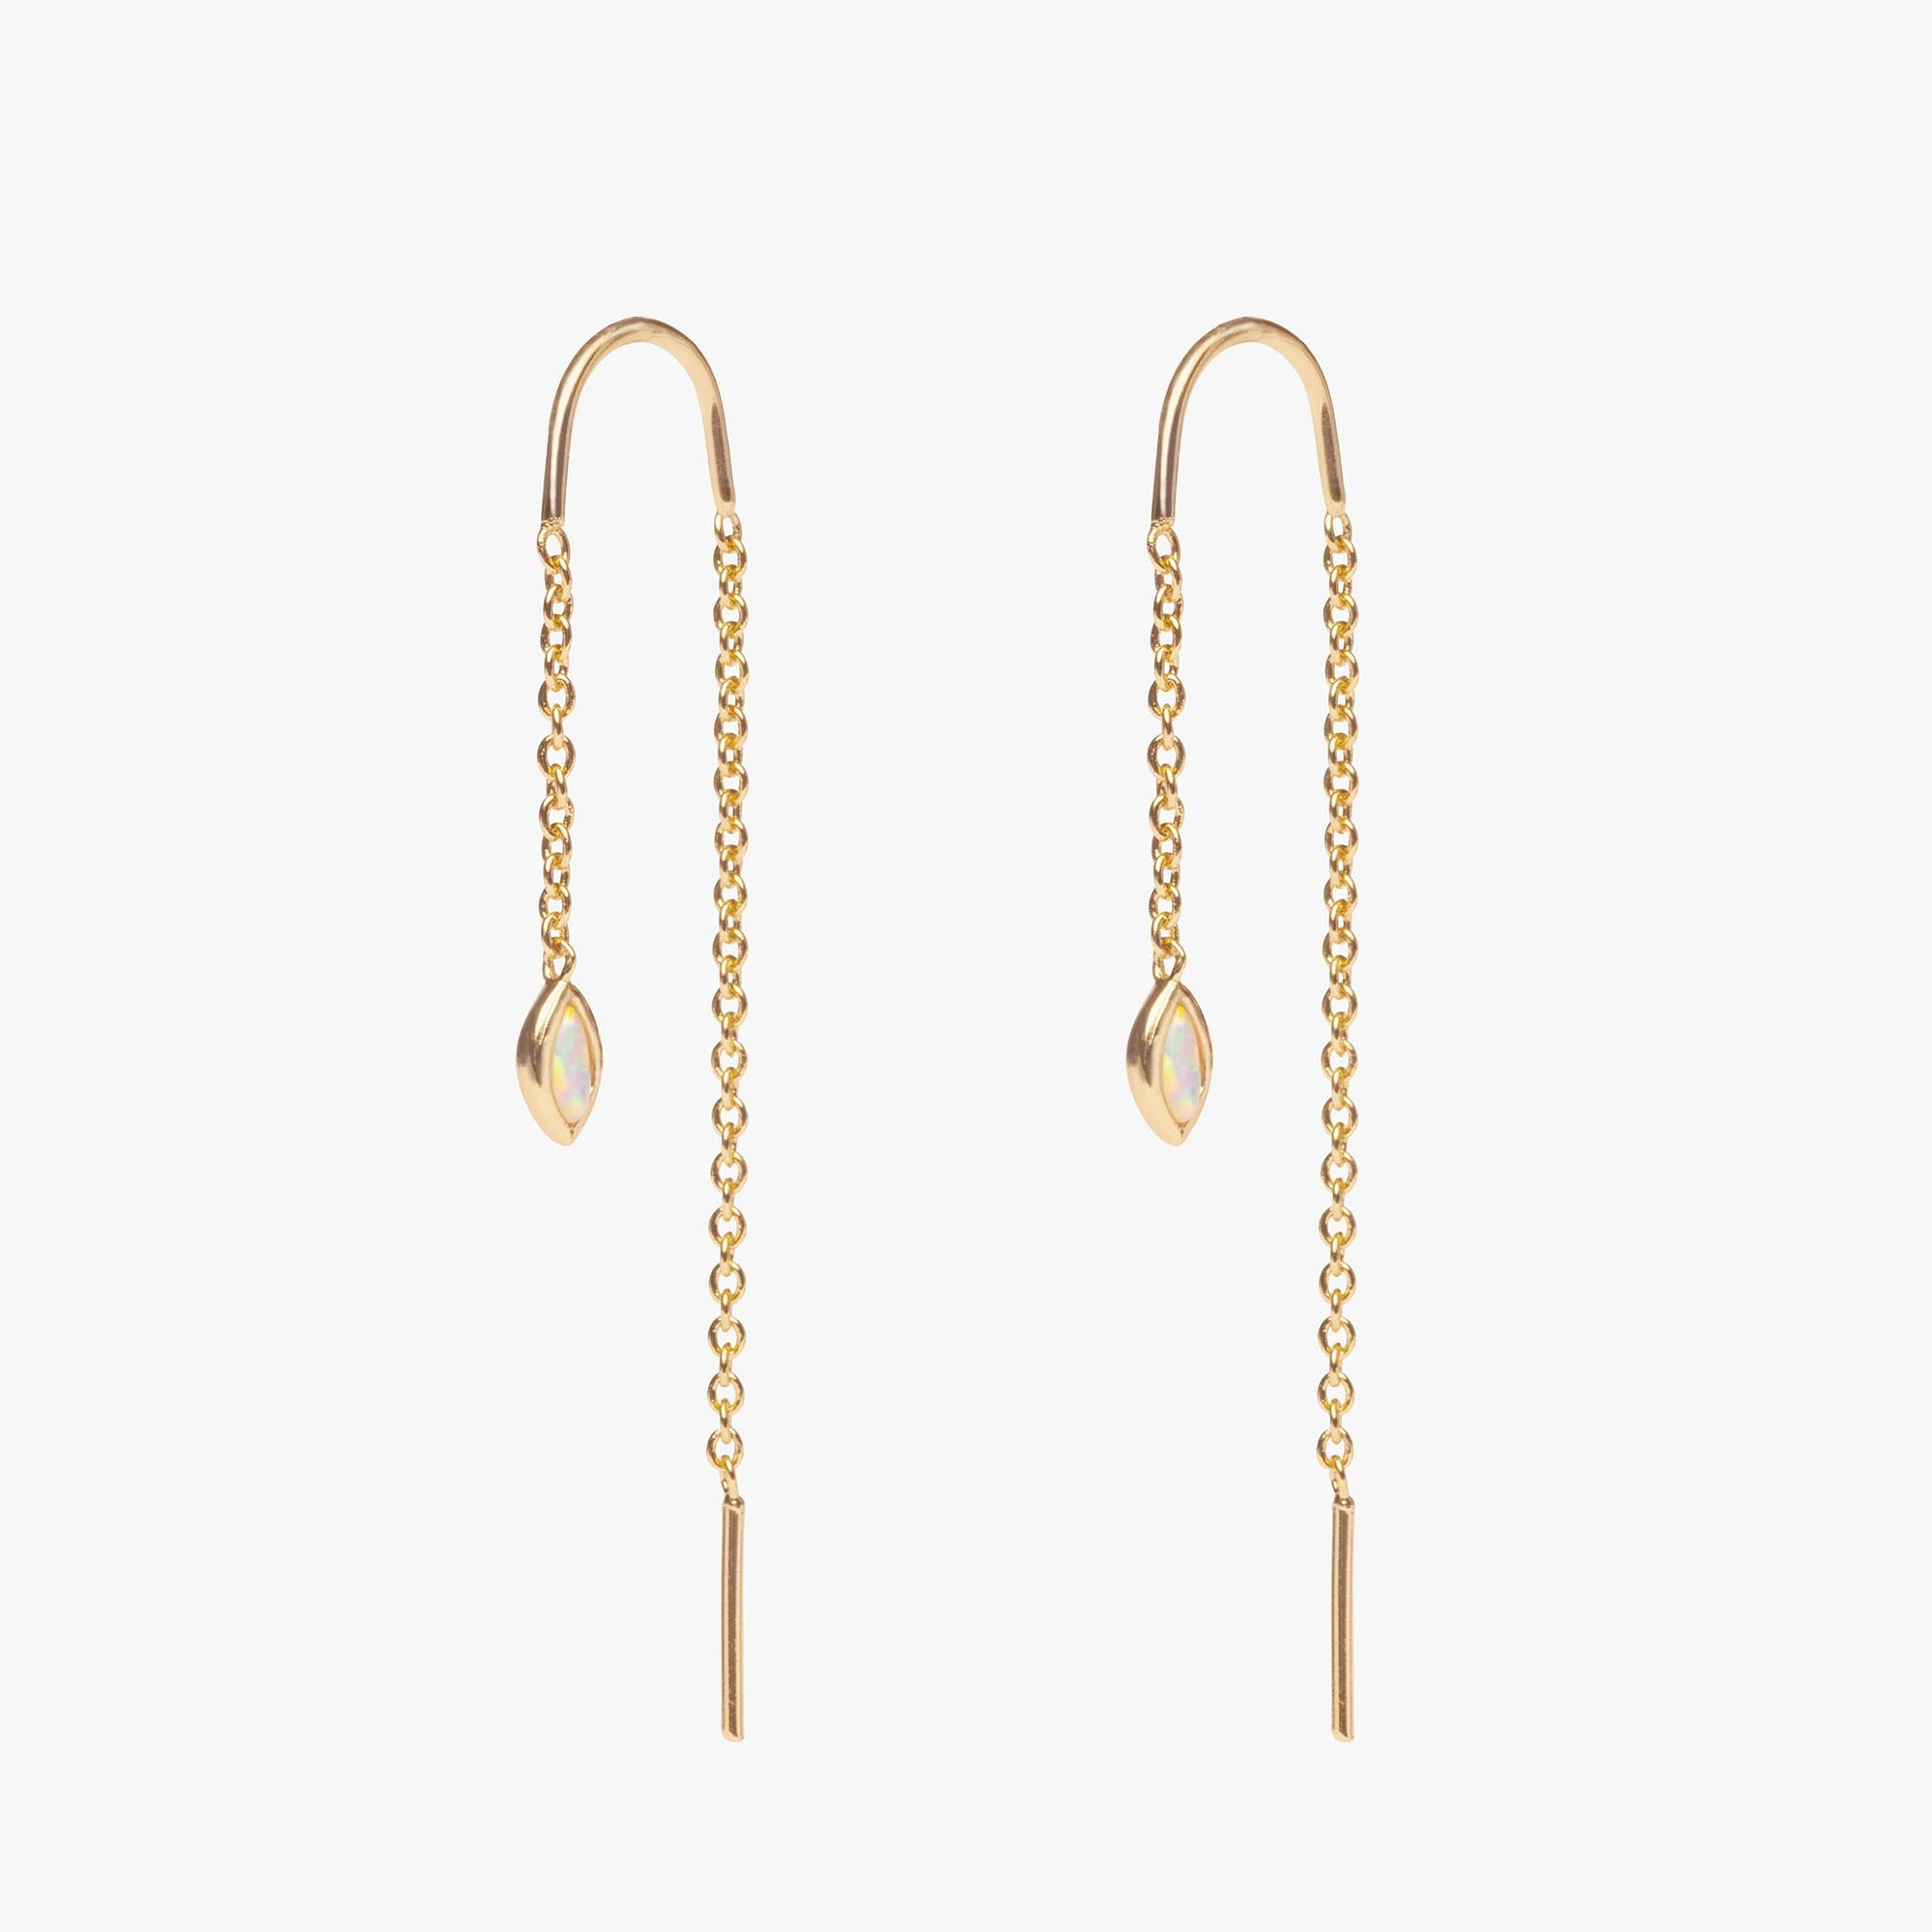 The teardrop threader is a gold chain with a opal gem on the end that dangles off the ear. [pair] color:gold/opal